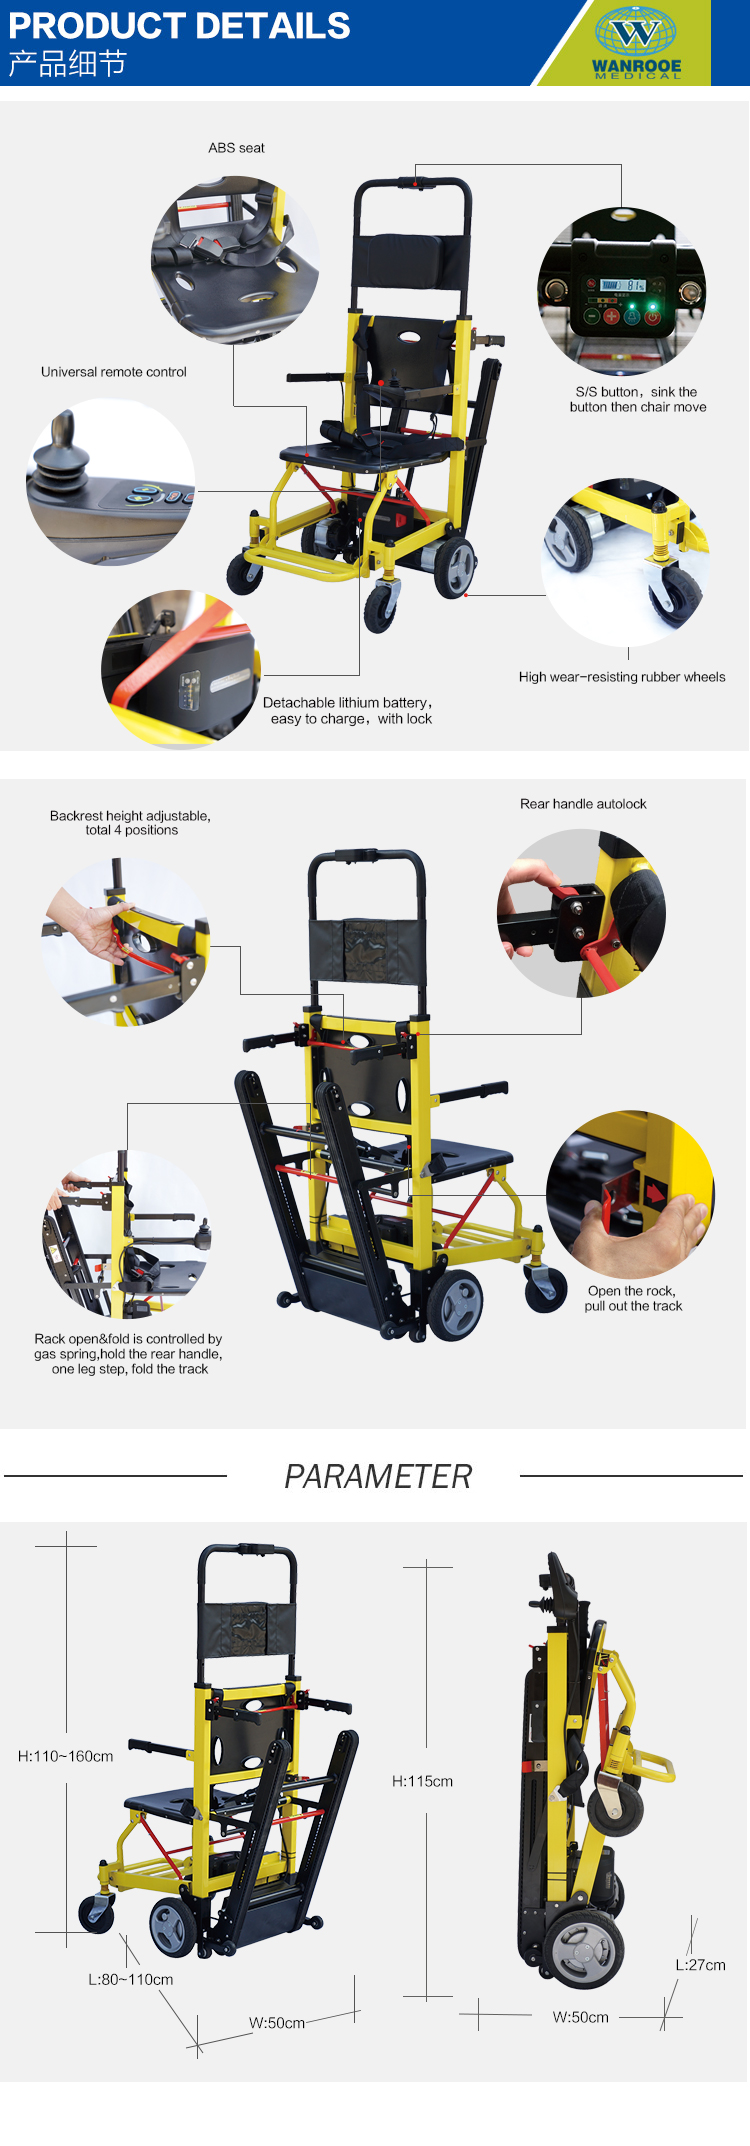 Stair Climbing Wheelchair, Electric Trolley, Electric Cart, Climbing Trolley, Stair Climbing Cart